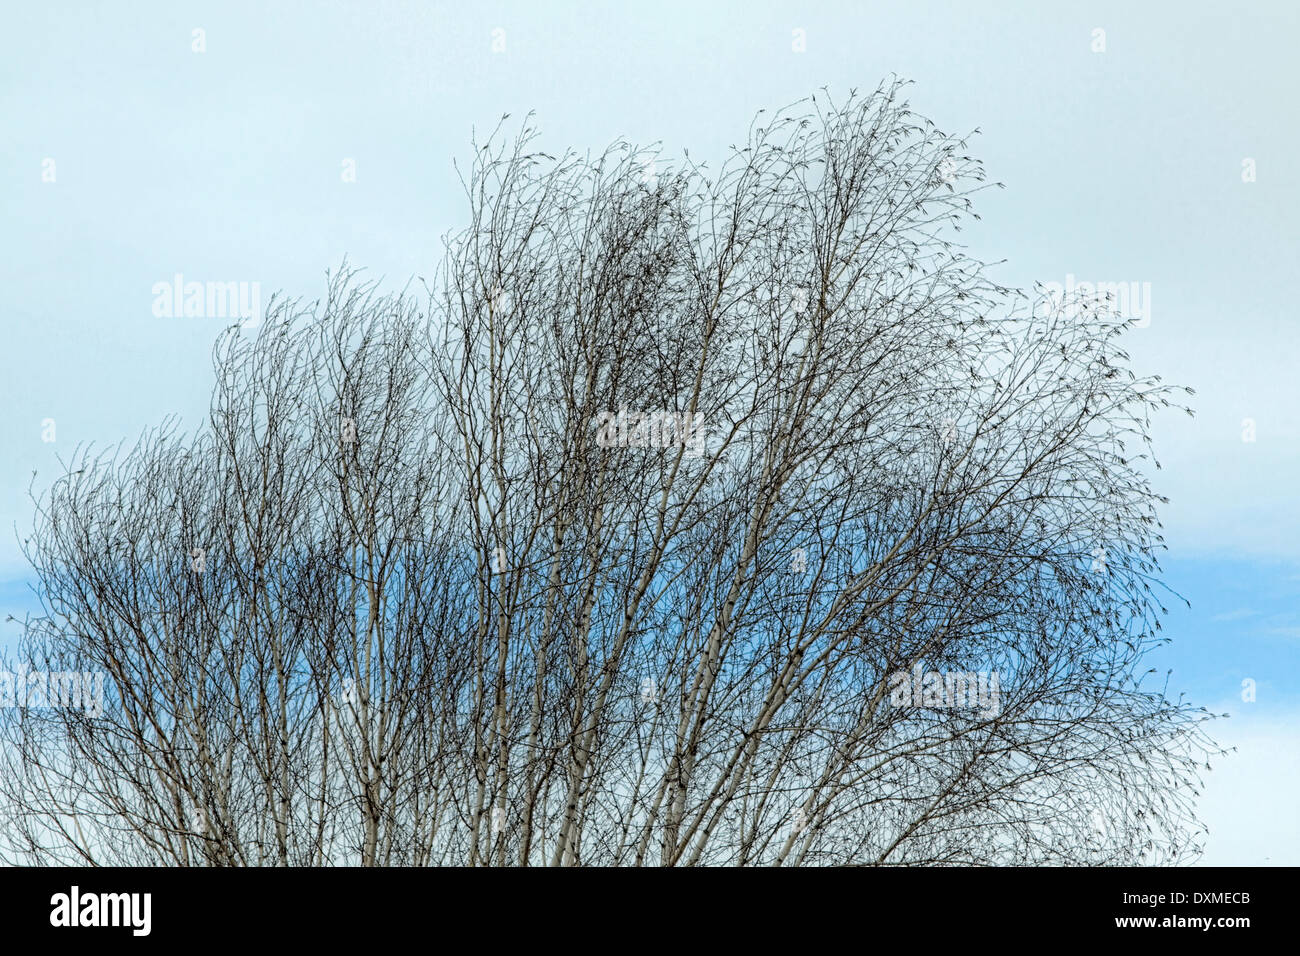 Silver birch trees or Betula pendula on a beautiful day in spring. - Stock Image